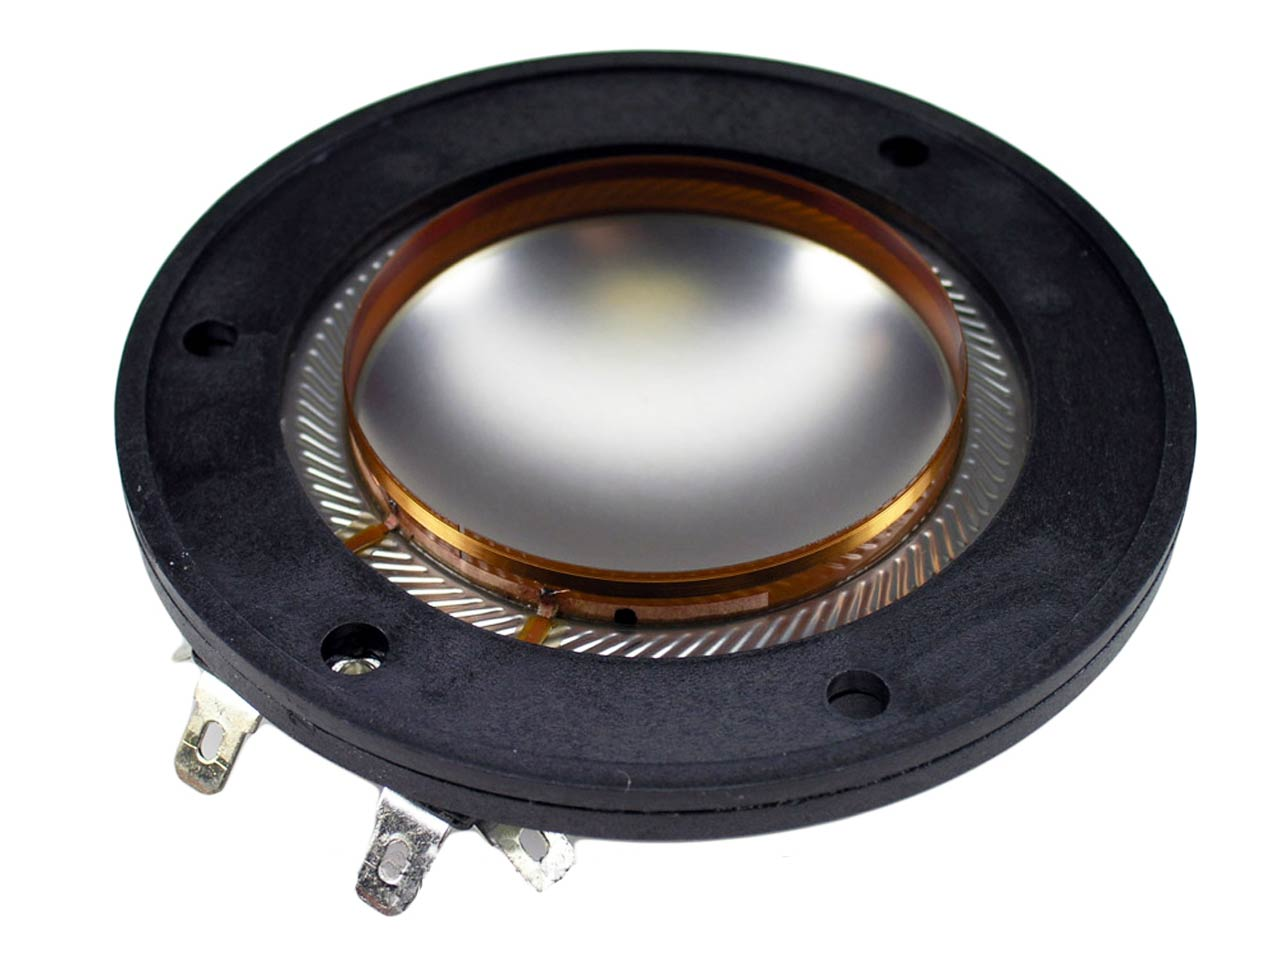 SS Audio Yamaha Speaker Diaphragm